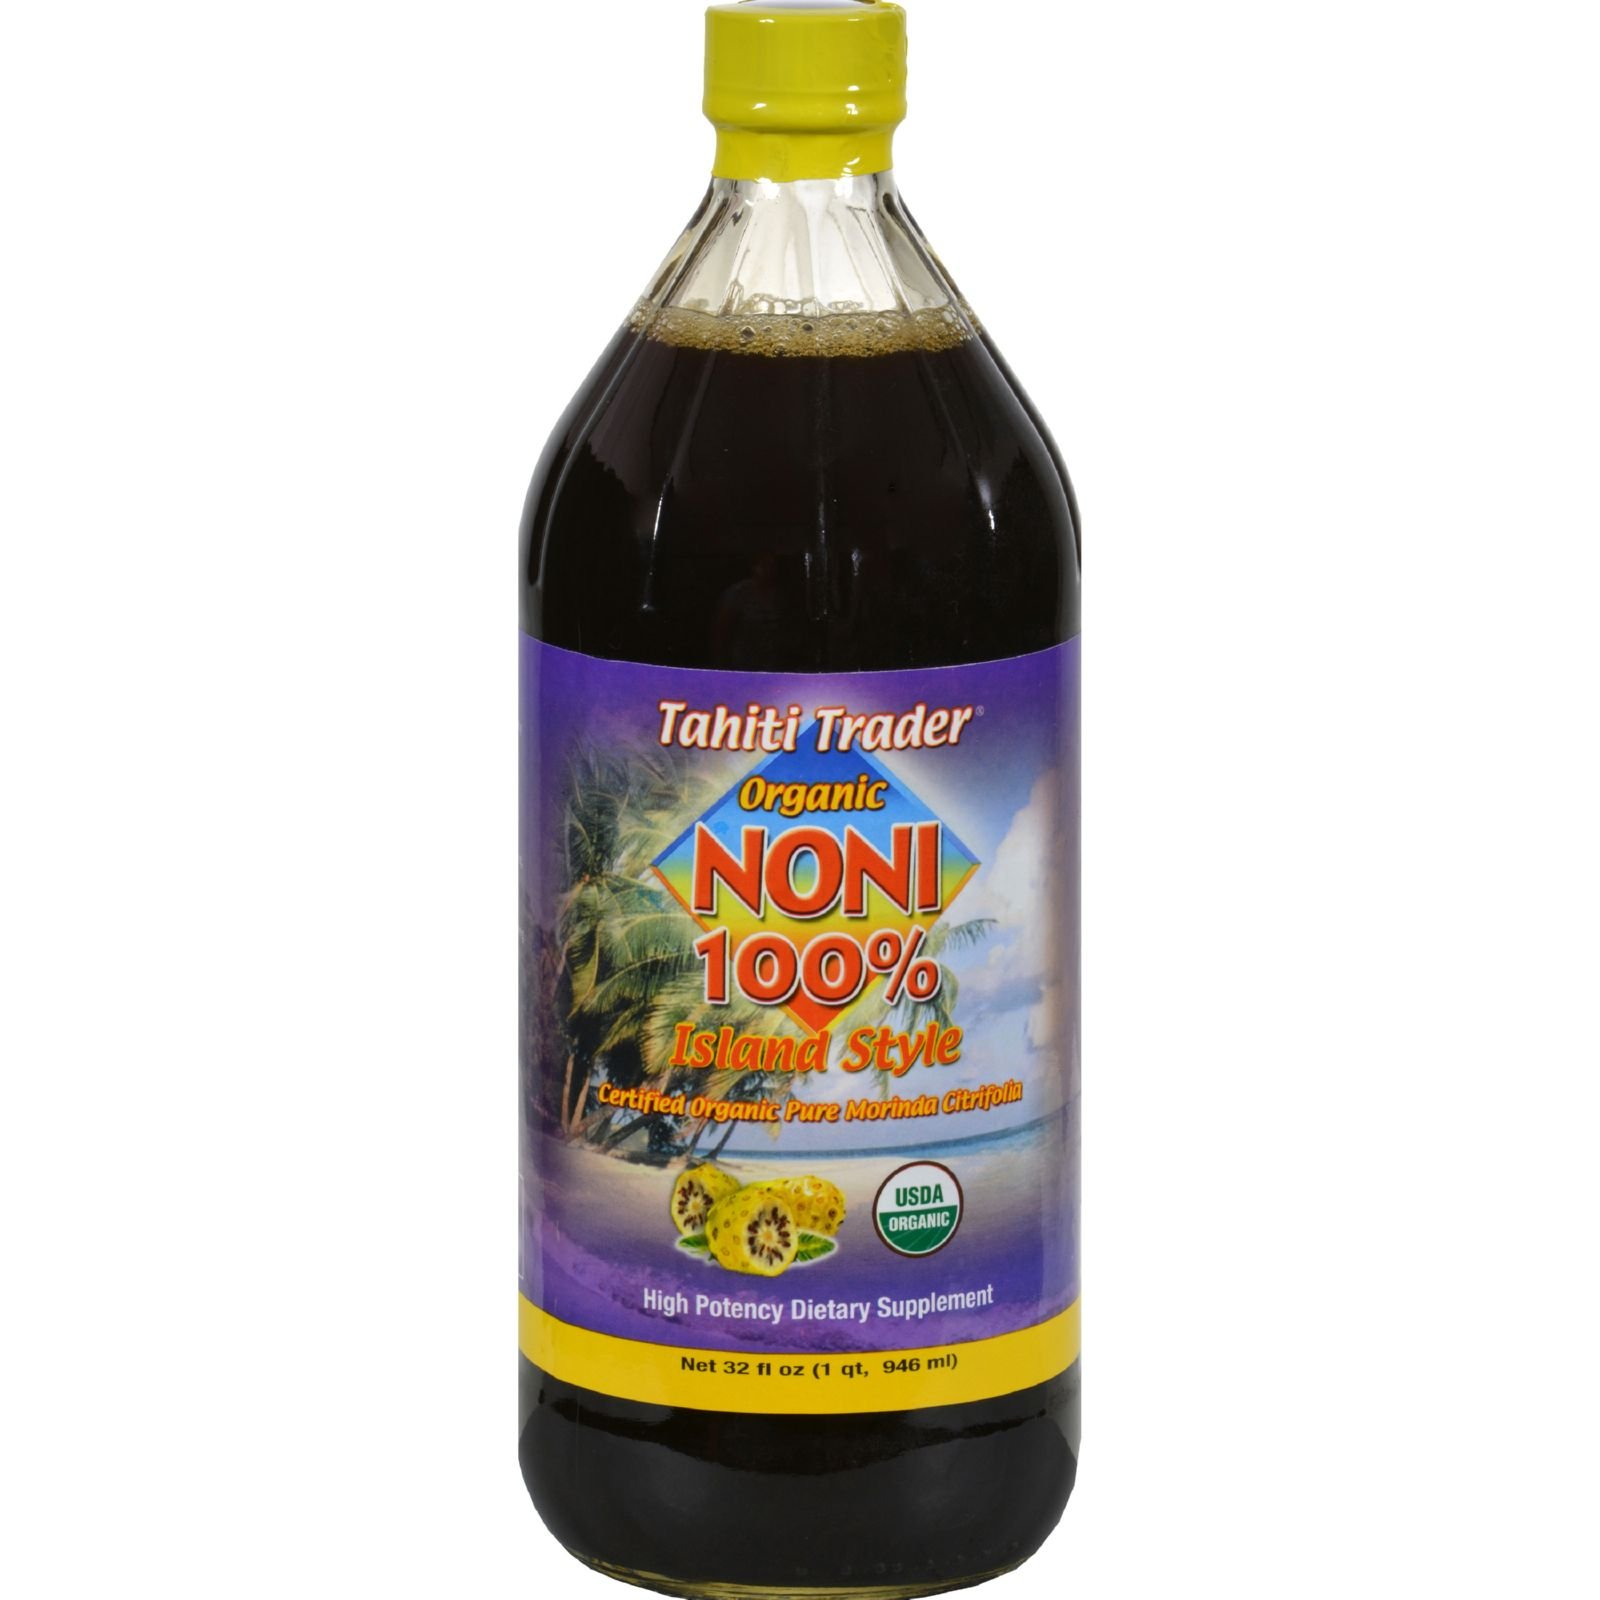 2 Pack of Tahiti Trader Juice Noni 100% Island